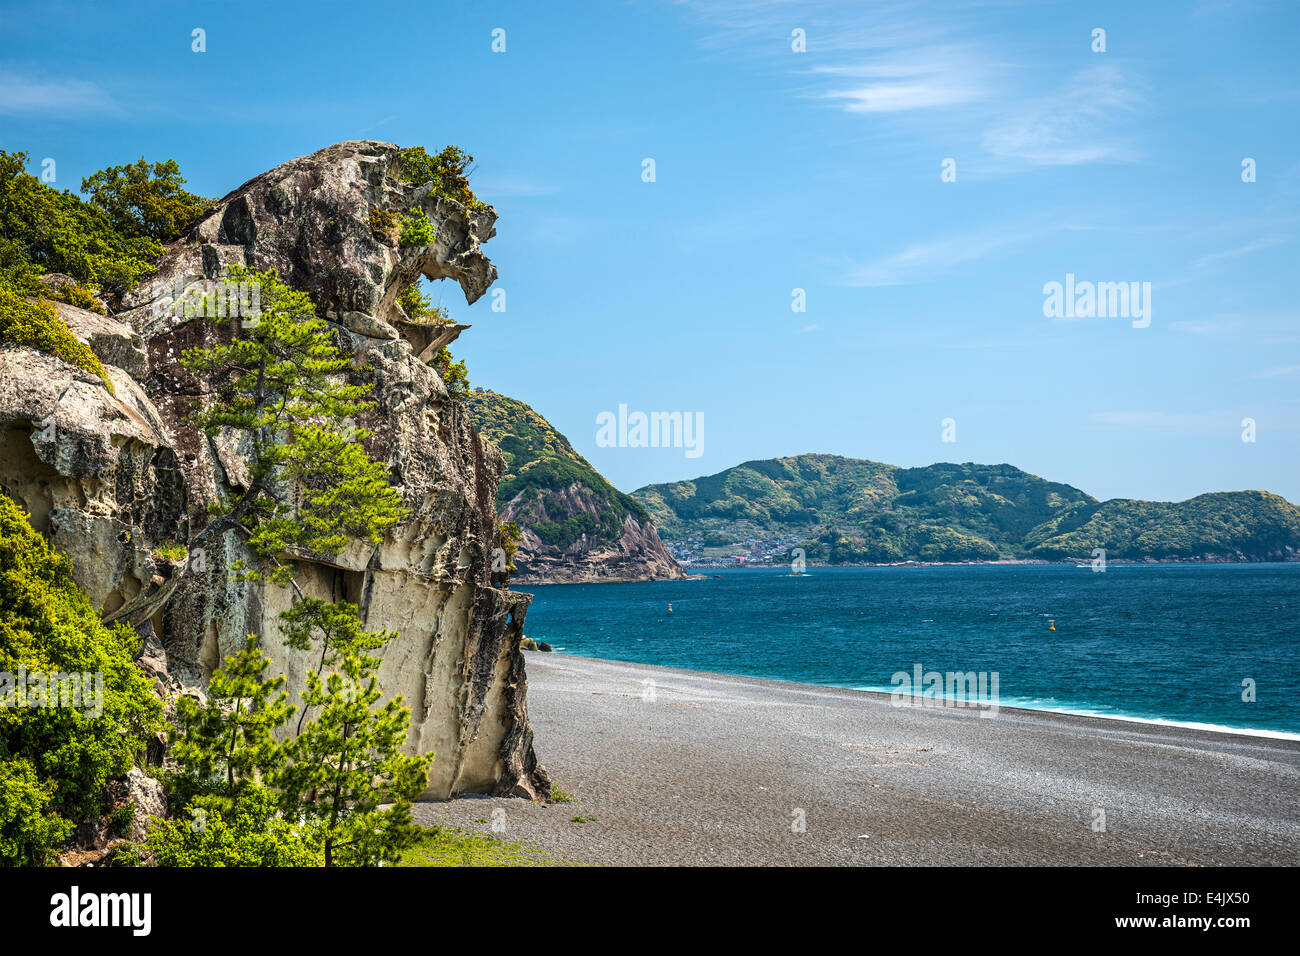 Lion rock (Shishi-iwa) in Kumano, Japan. - Stock Image